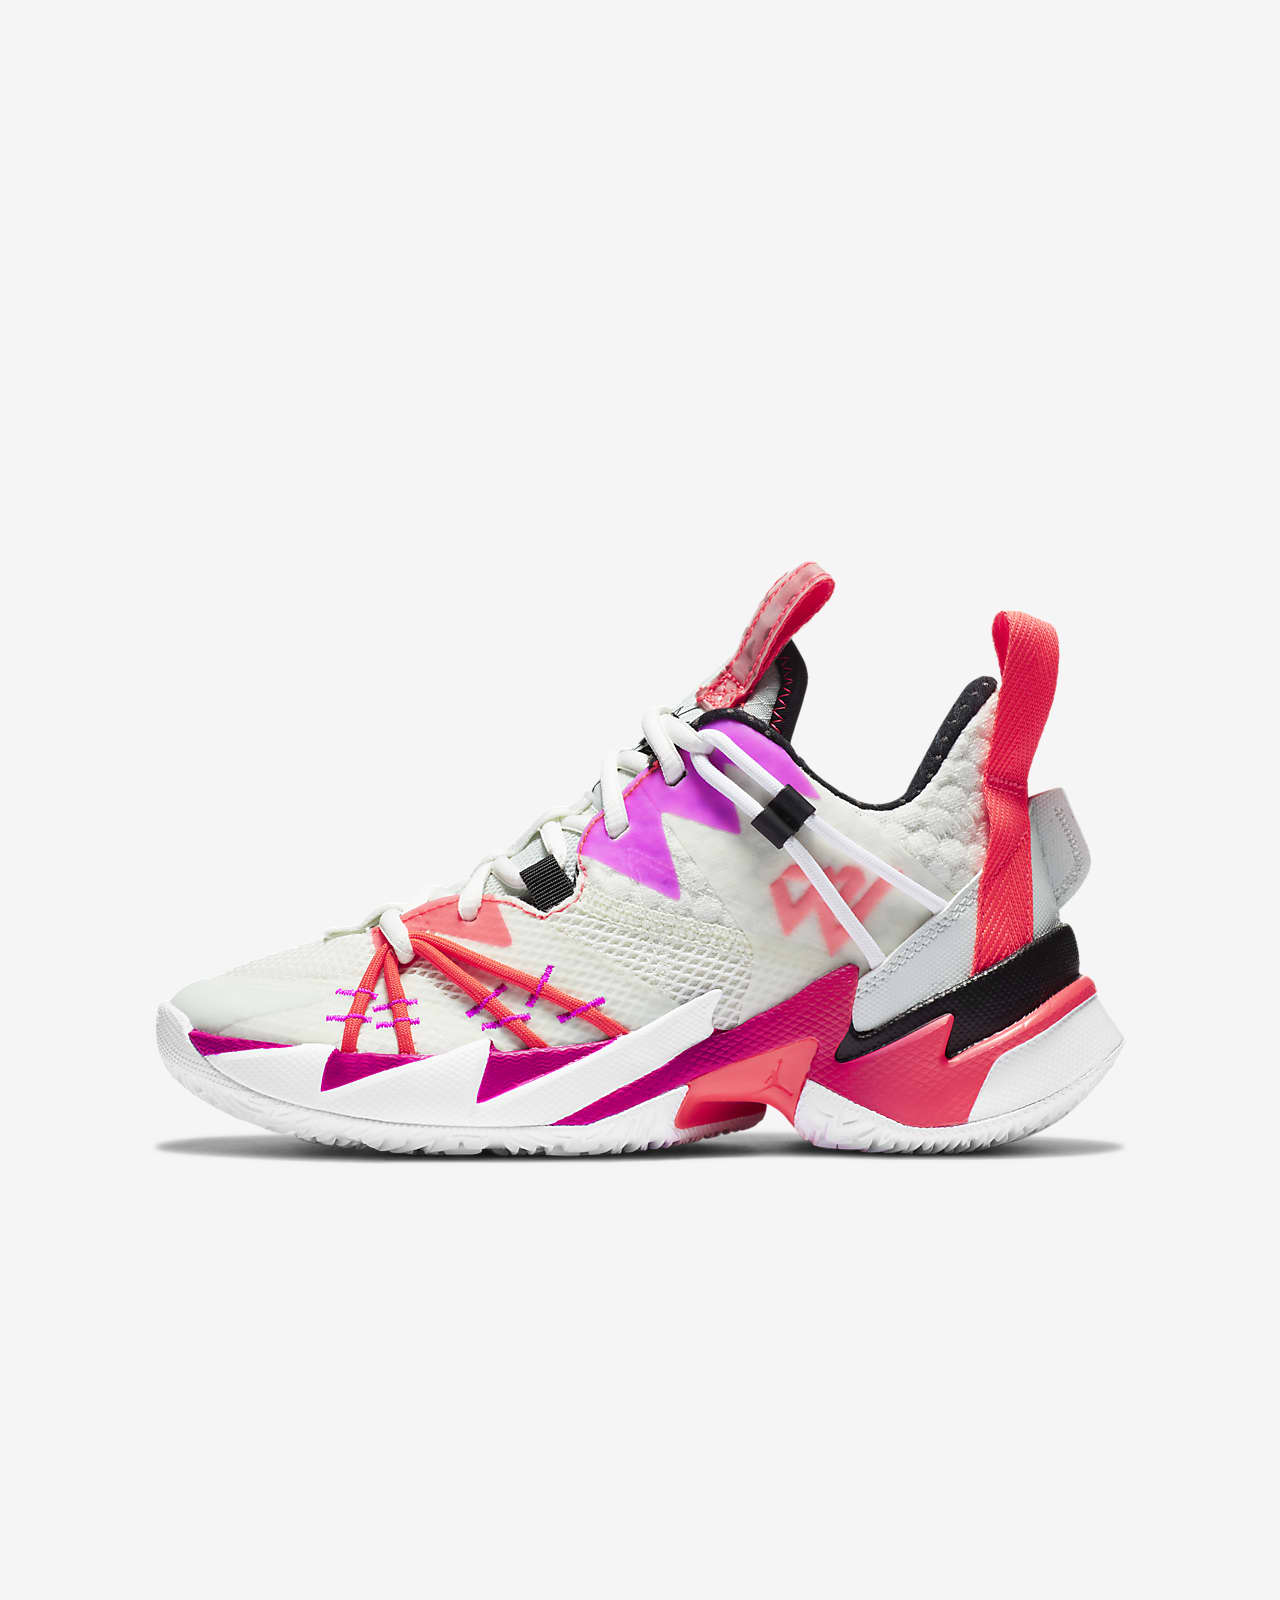 Jordan 'Why Not?' Zer0.3 SE Older Kids' Basketball Shoe